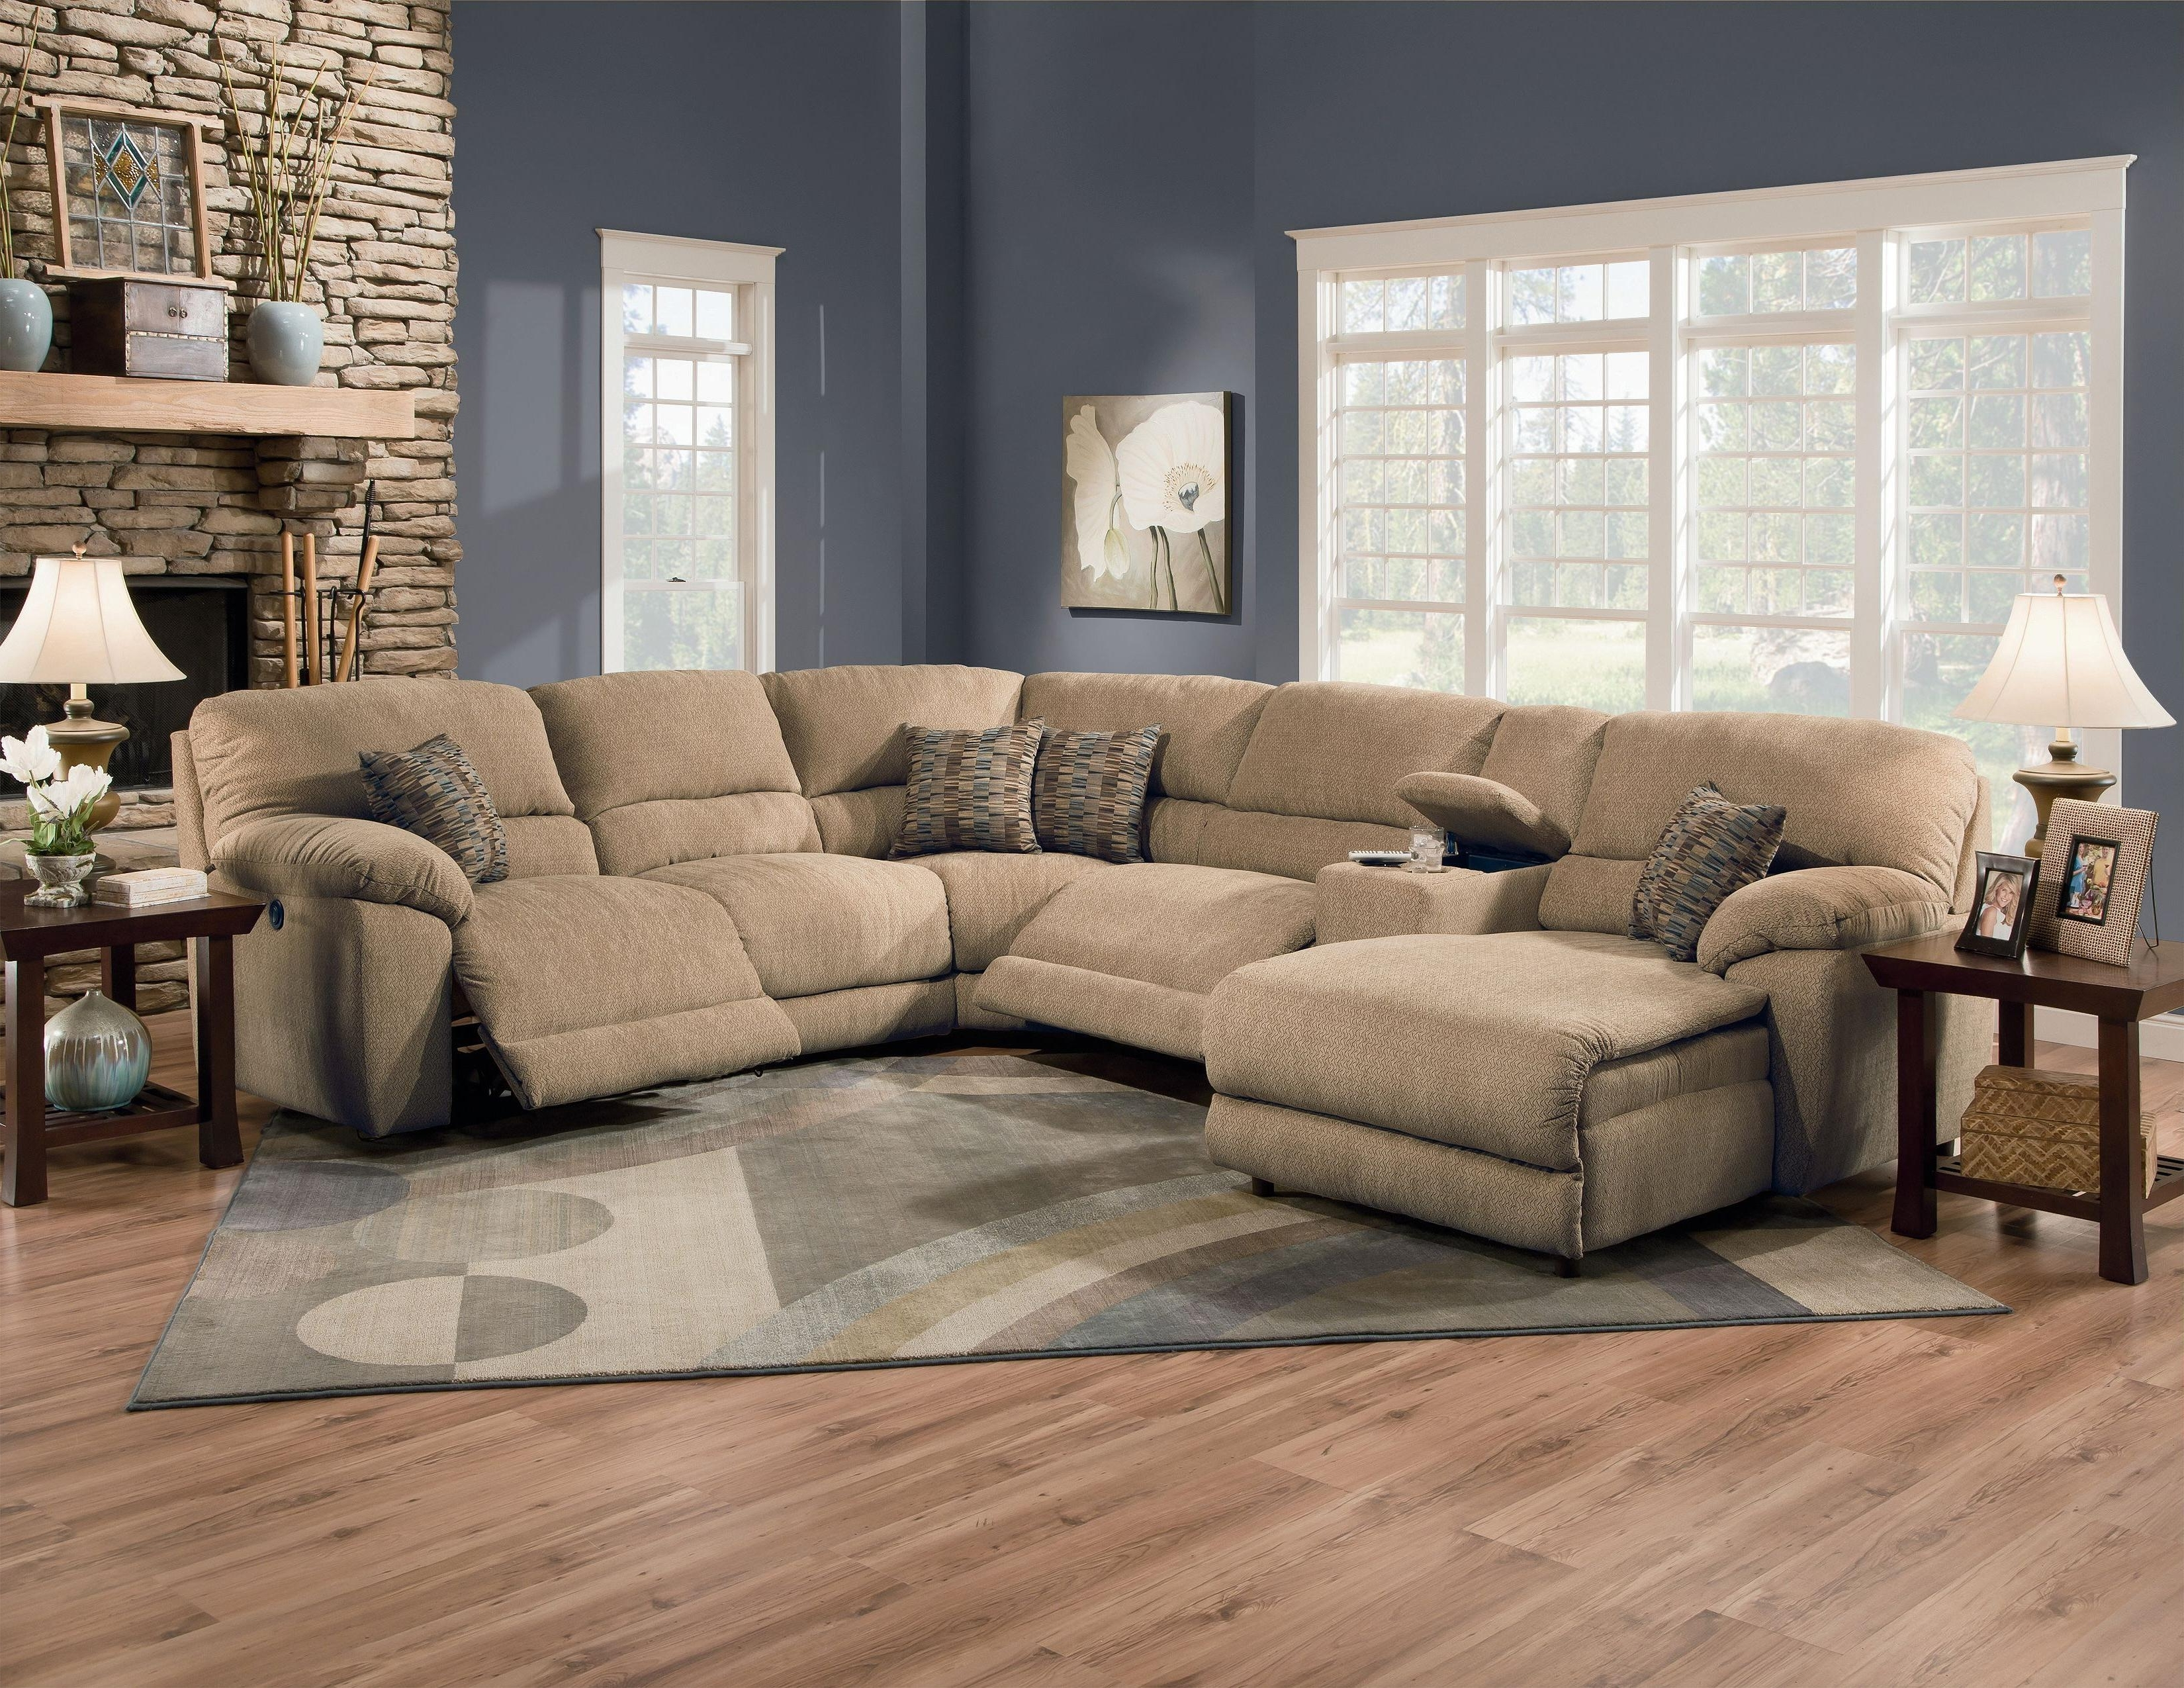 Lane Furniture: Rivers Collection Featuring Power Reclining Intended For Well Known Lubbock Sectional Sofas (View 7 of 15)